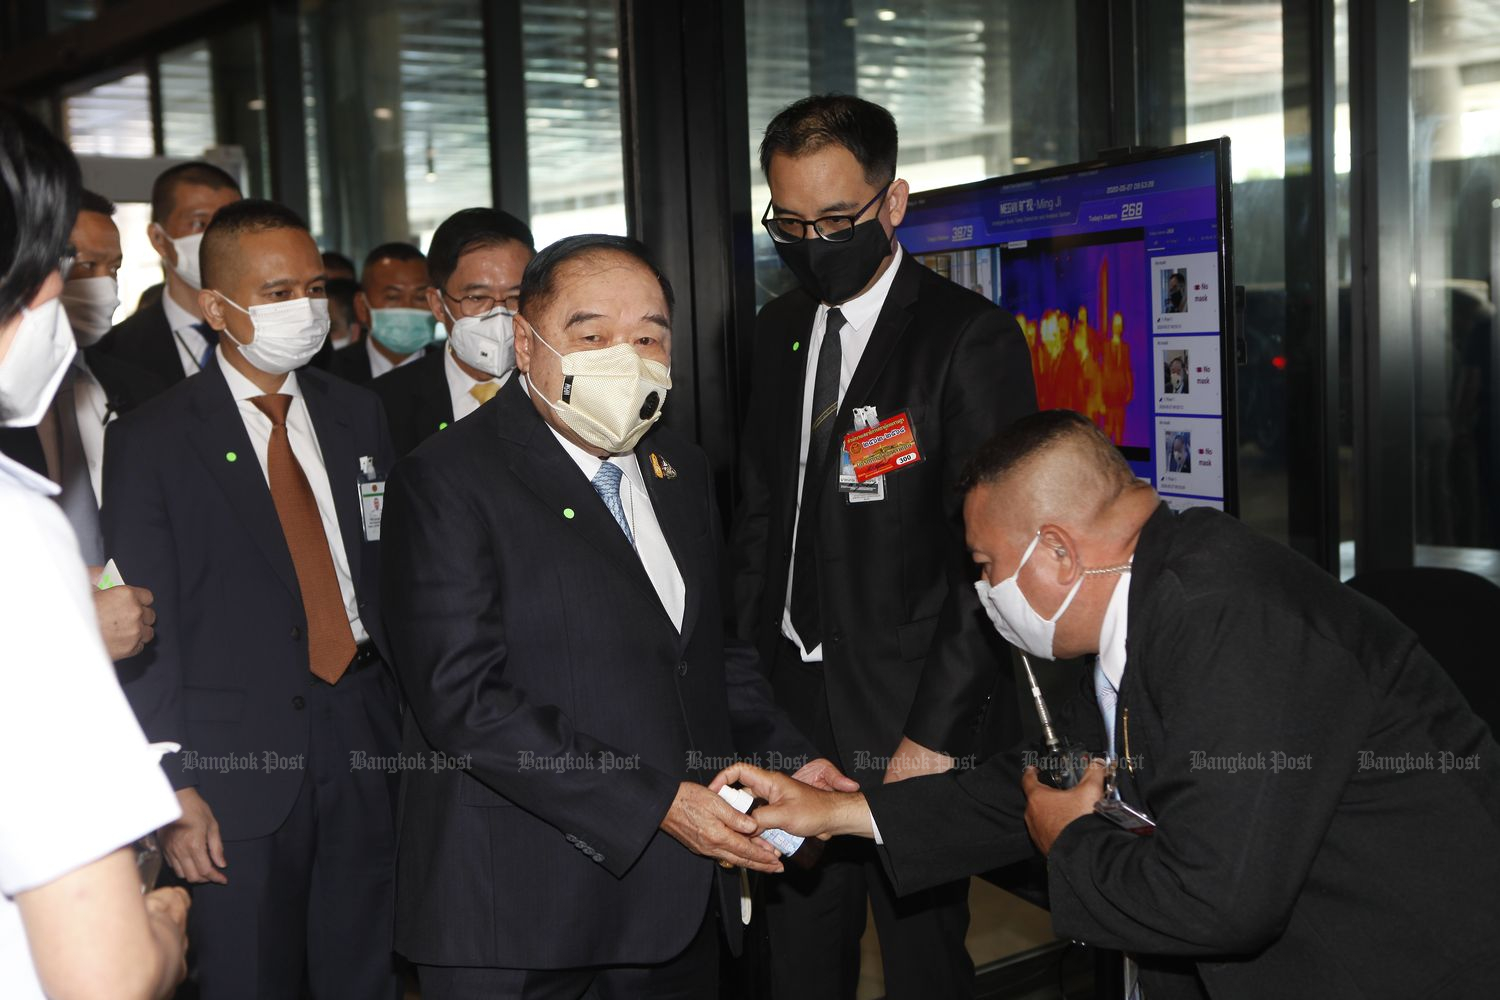 Deputy Prime Minister Gen Prawit Wongsuwon, who is also chief strategist of Palang Pracharath party, has his hands cleaned as he arrives at Parliament on Wednesday to hear the debate on the Covid-19 decrees proposed by the government. (Photo by Nutthawat Wichieanbut)